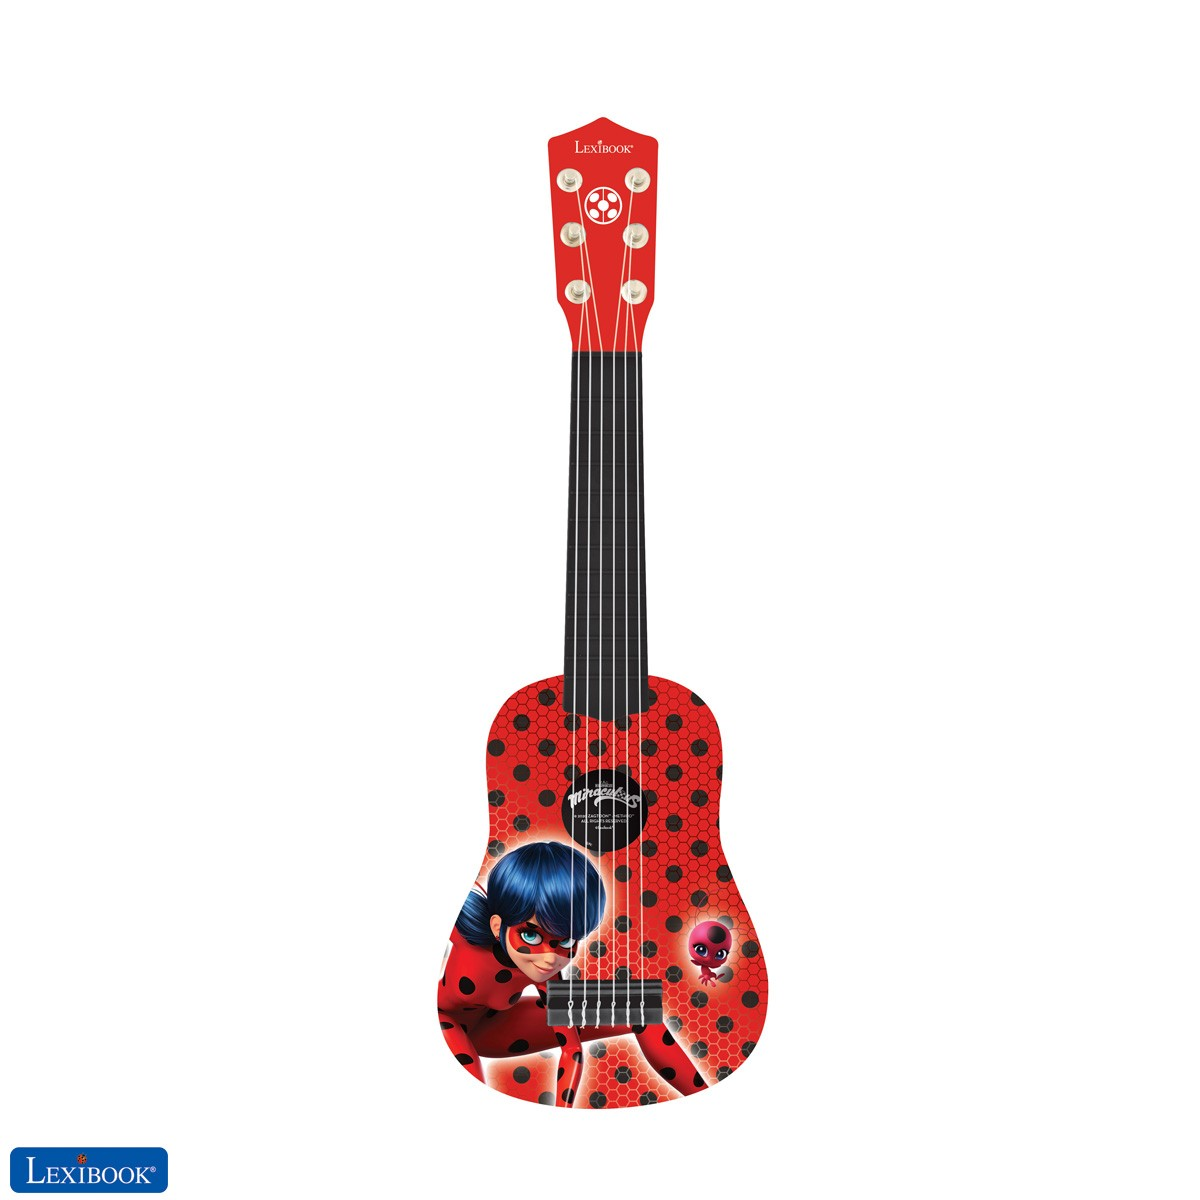 Miraculous Ladybug My First Guitar for children